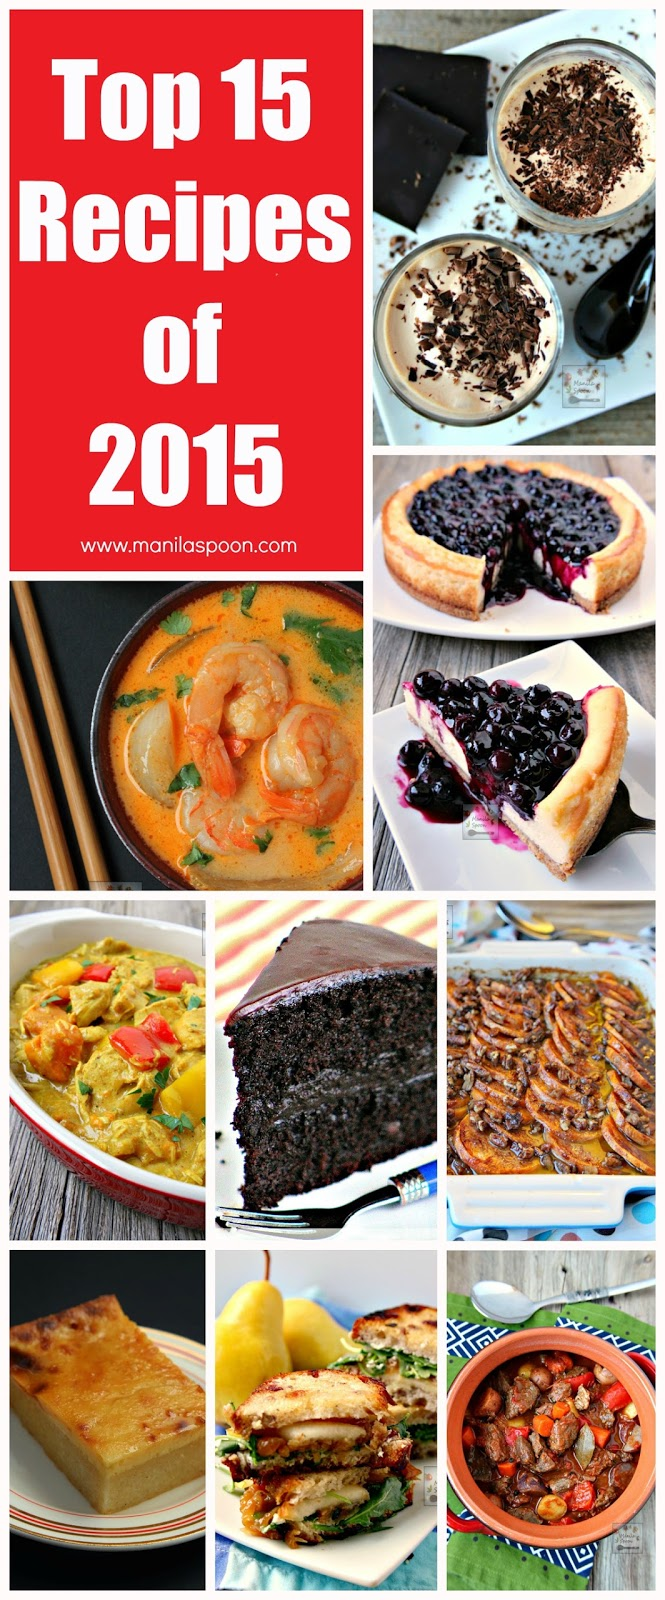 A round-up of our most popular, most pinned and most viewed recipes of 2015! A variety of tried and tested, sweet and savory dishes that the whole family can enjoy throughout the years to come! | manilaspoon.com